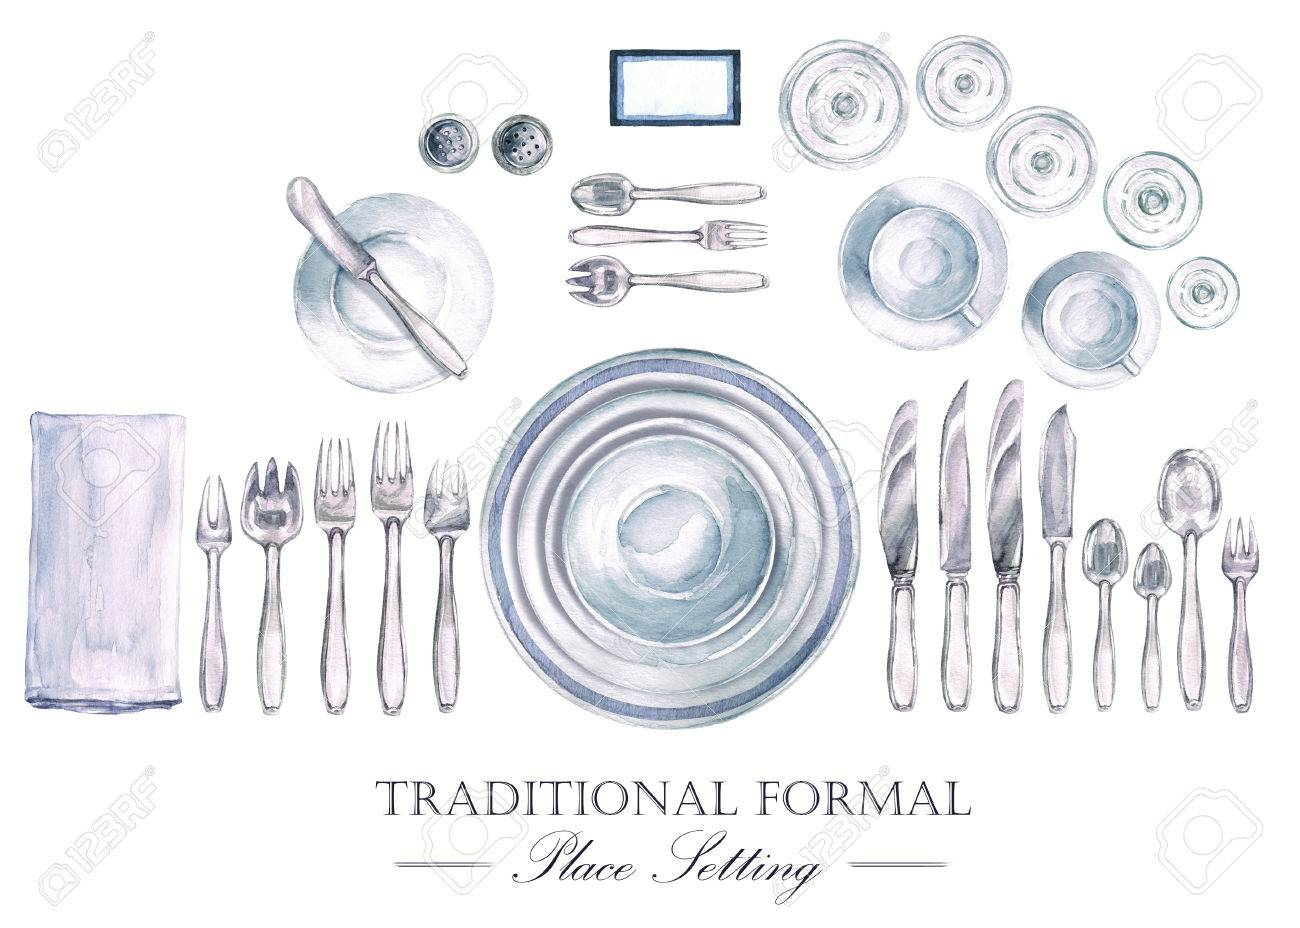 Illustration - Traditional Formal Place Setting. Watercolor Illustration  sc 1 st  123RF.com & Traditional Formal Place Setting. Watercolor Illustration Stock ...